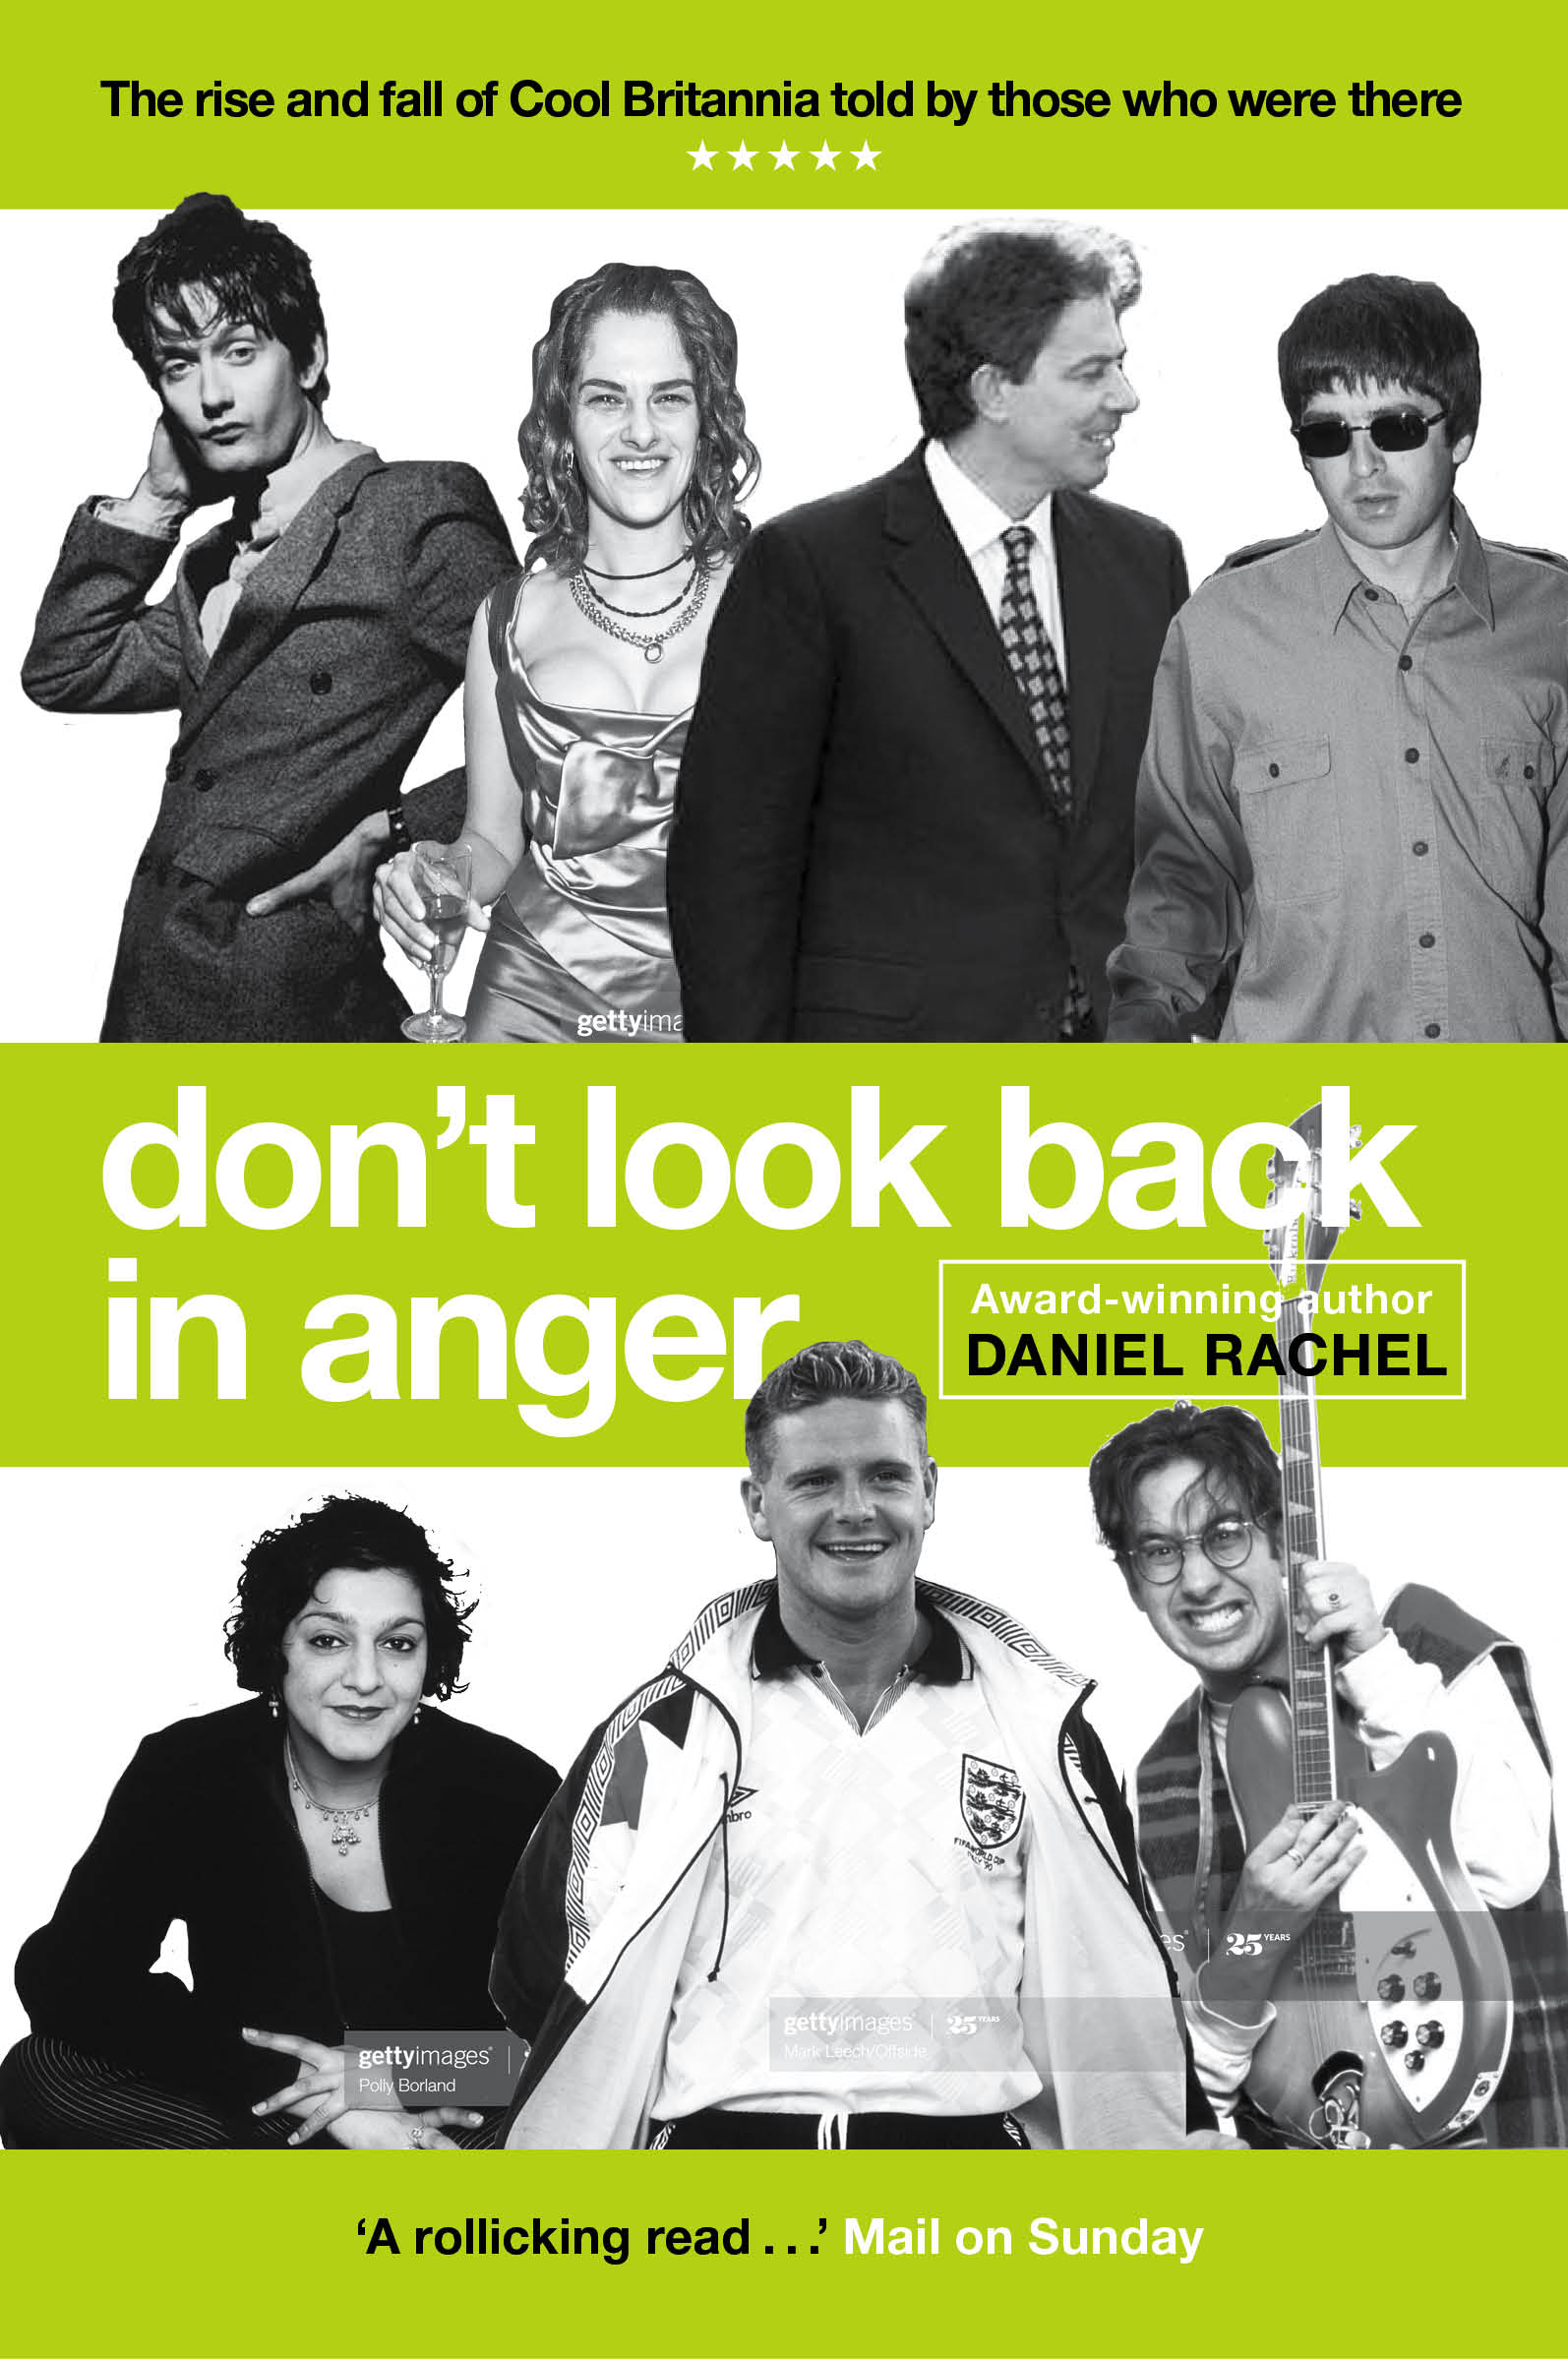 Paperback publication of Don't Look Back in Anger March 2021